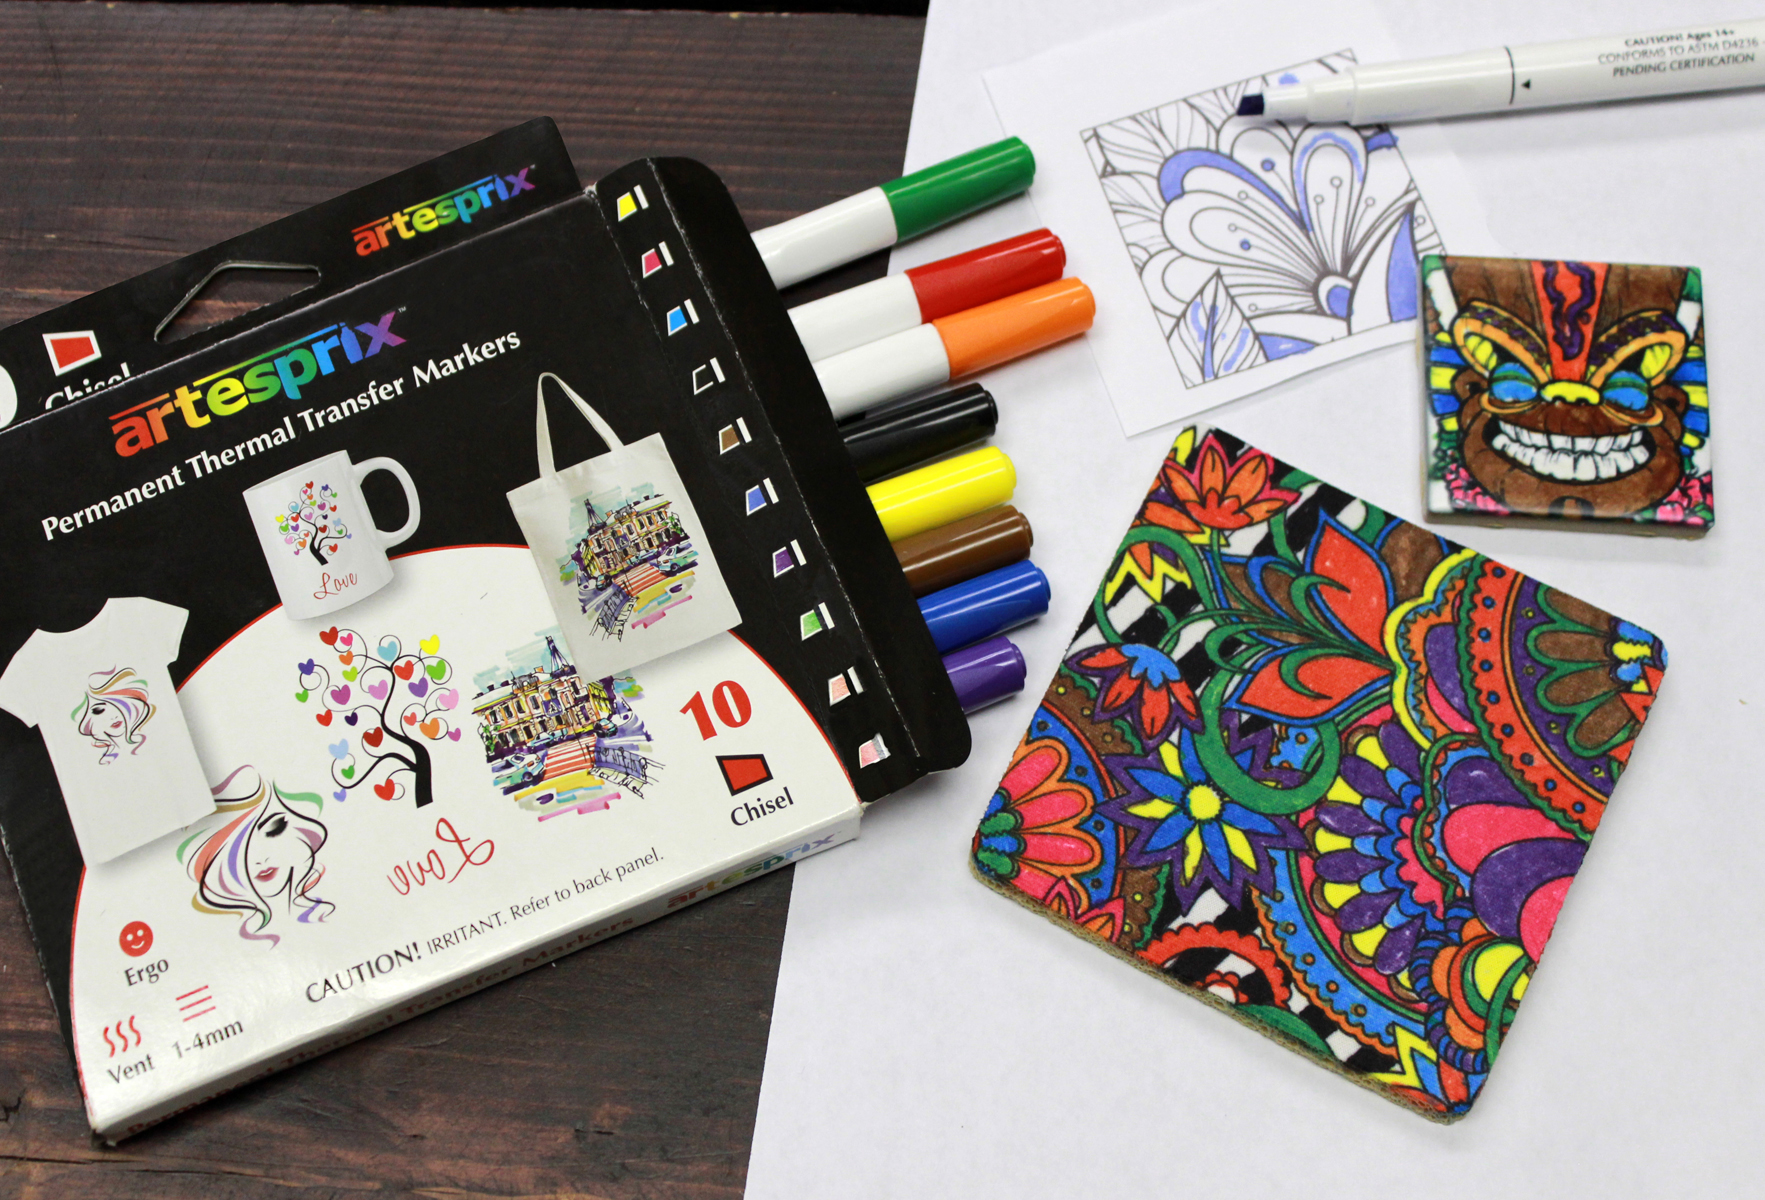 Condé Introduces Sublimation Transfer Markers - July 28, 2019